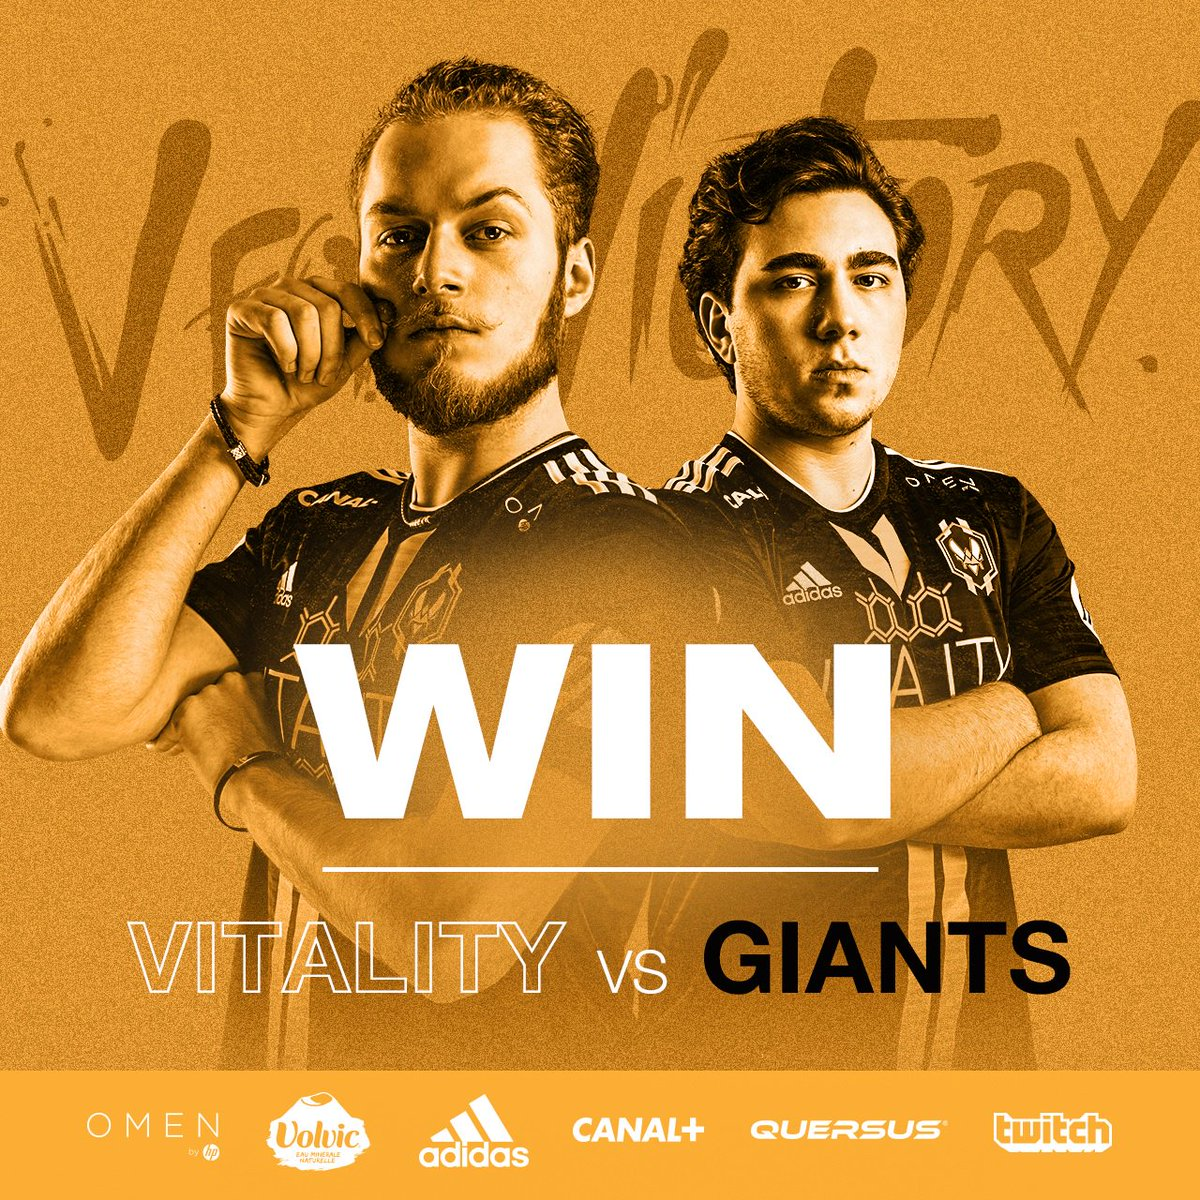 O GRANDE @MINITROUPAX!!! We take the win thanks to an incredible performance from our AD Carry and the team to go 2-0 in the first week of 2018 EULCS! #VforVictory https://t.co/tOYeRfyWuo